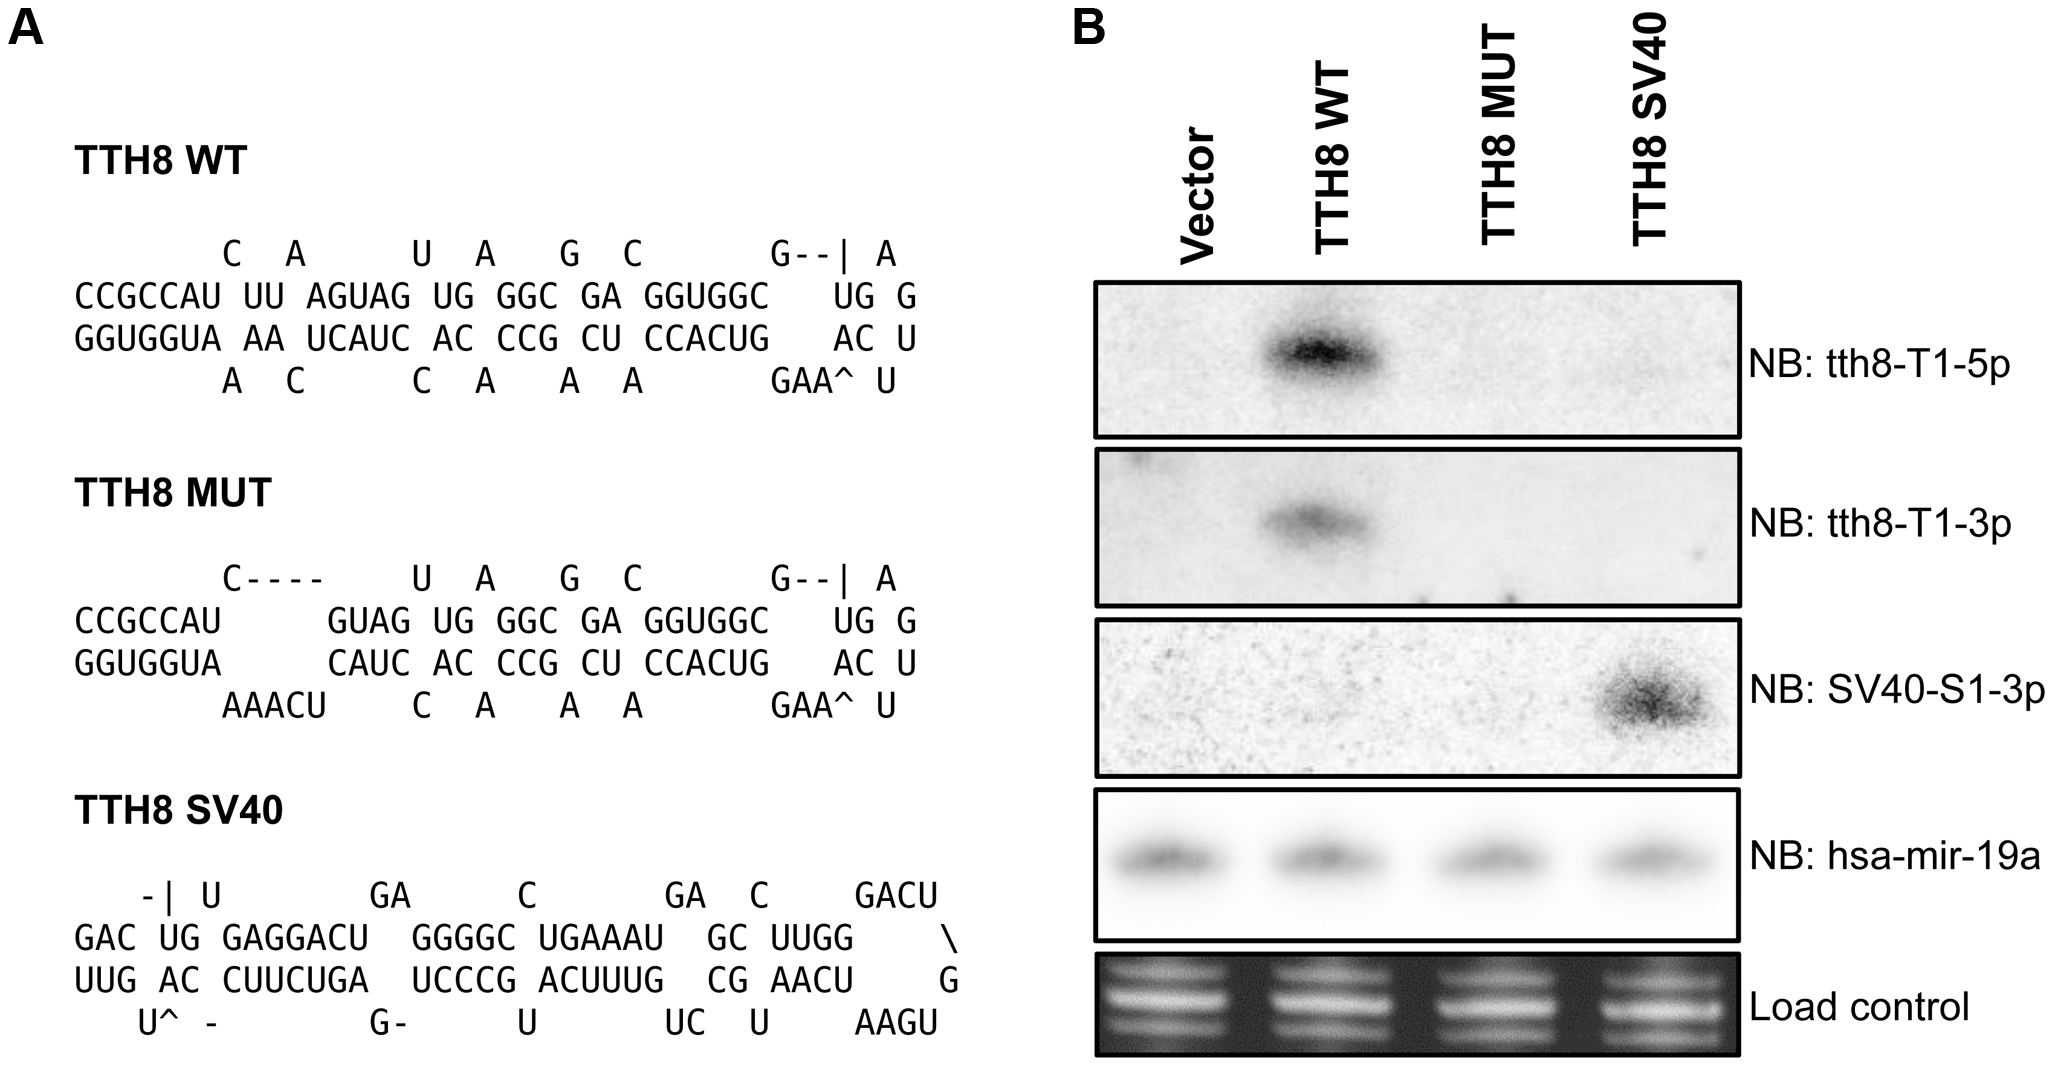 Generation of mutant and SV40 recombinant TTVs.